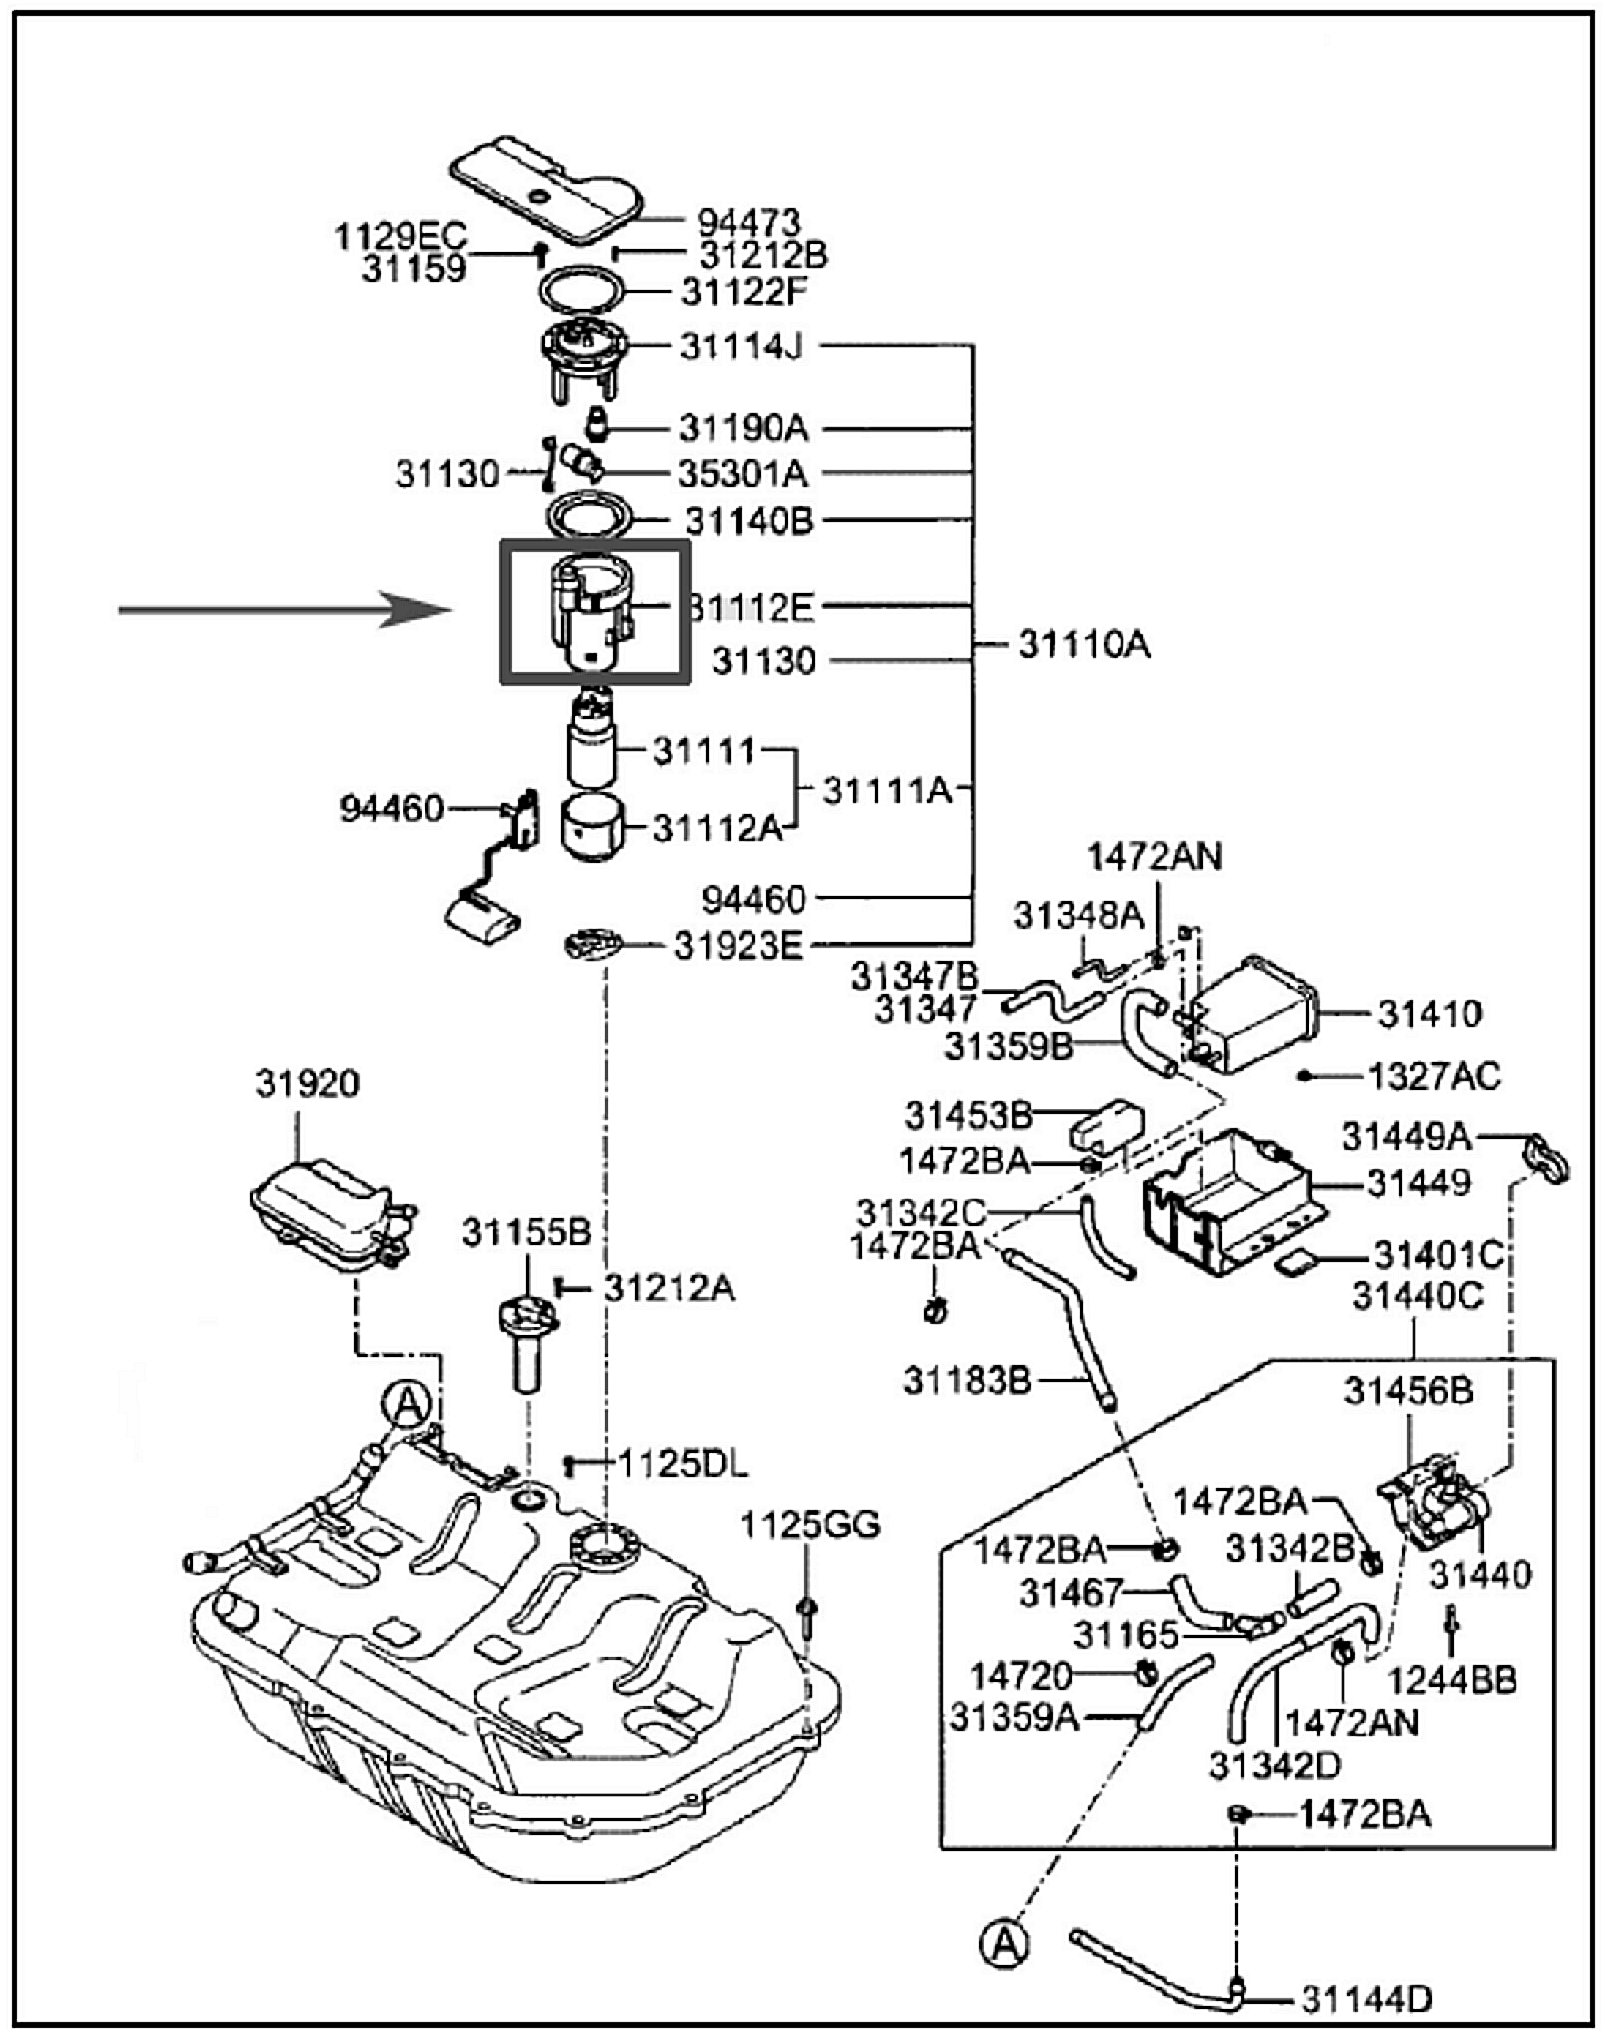 2003 Hyundai Santa Fe Fuel Tank Wiring Diagram Library Accent Schematic Filter Location